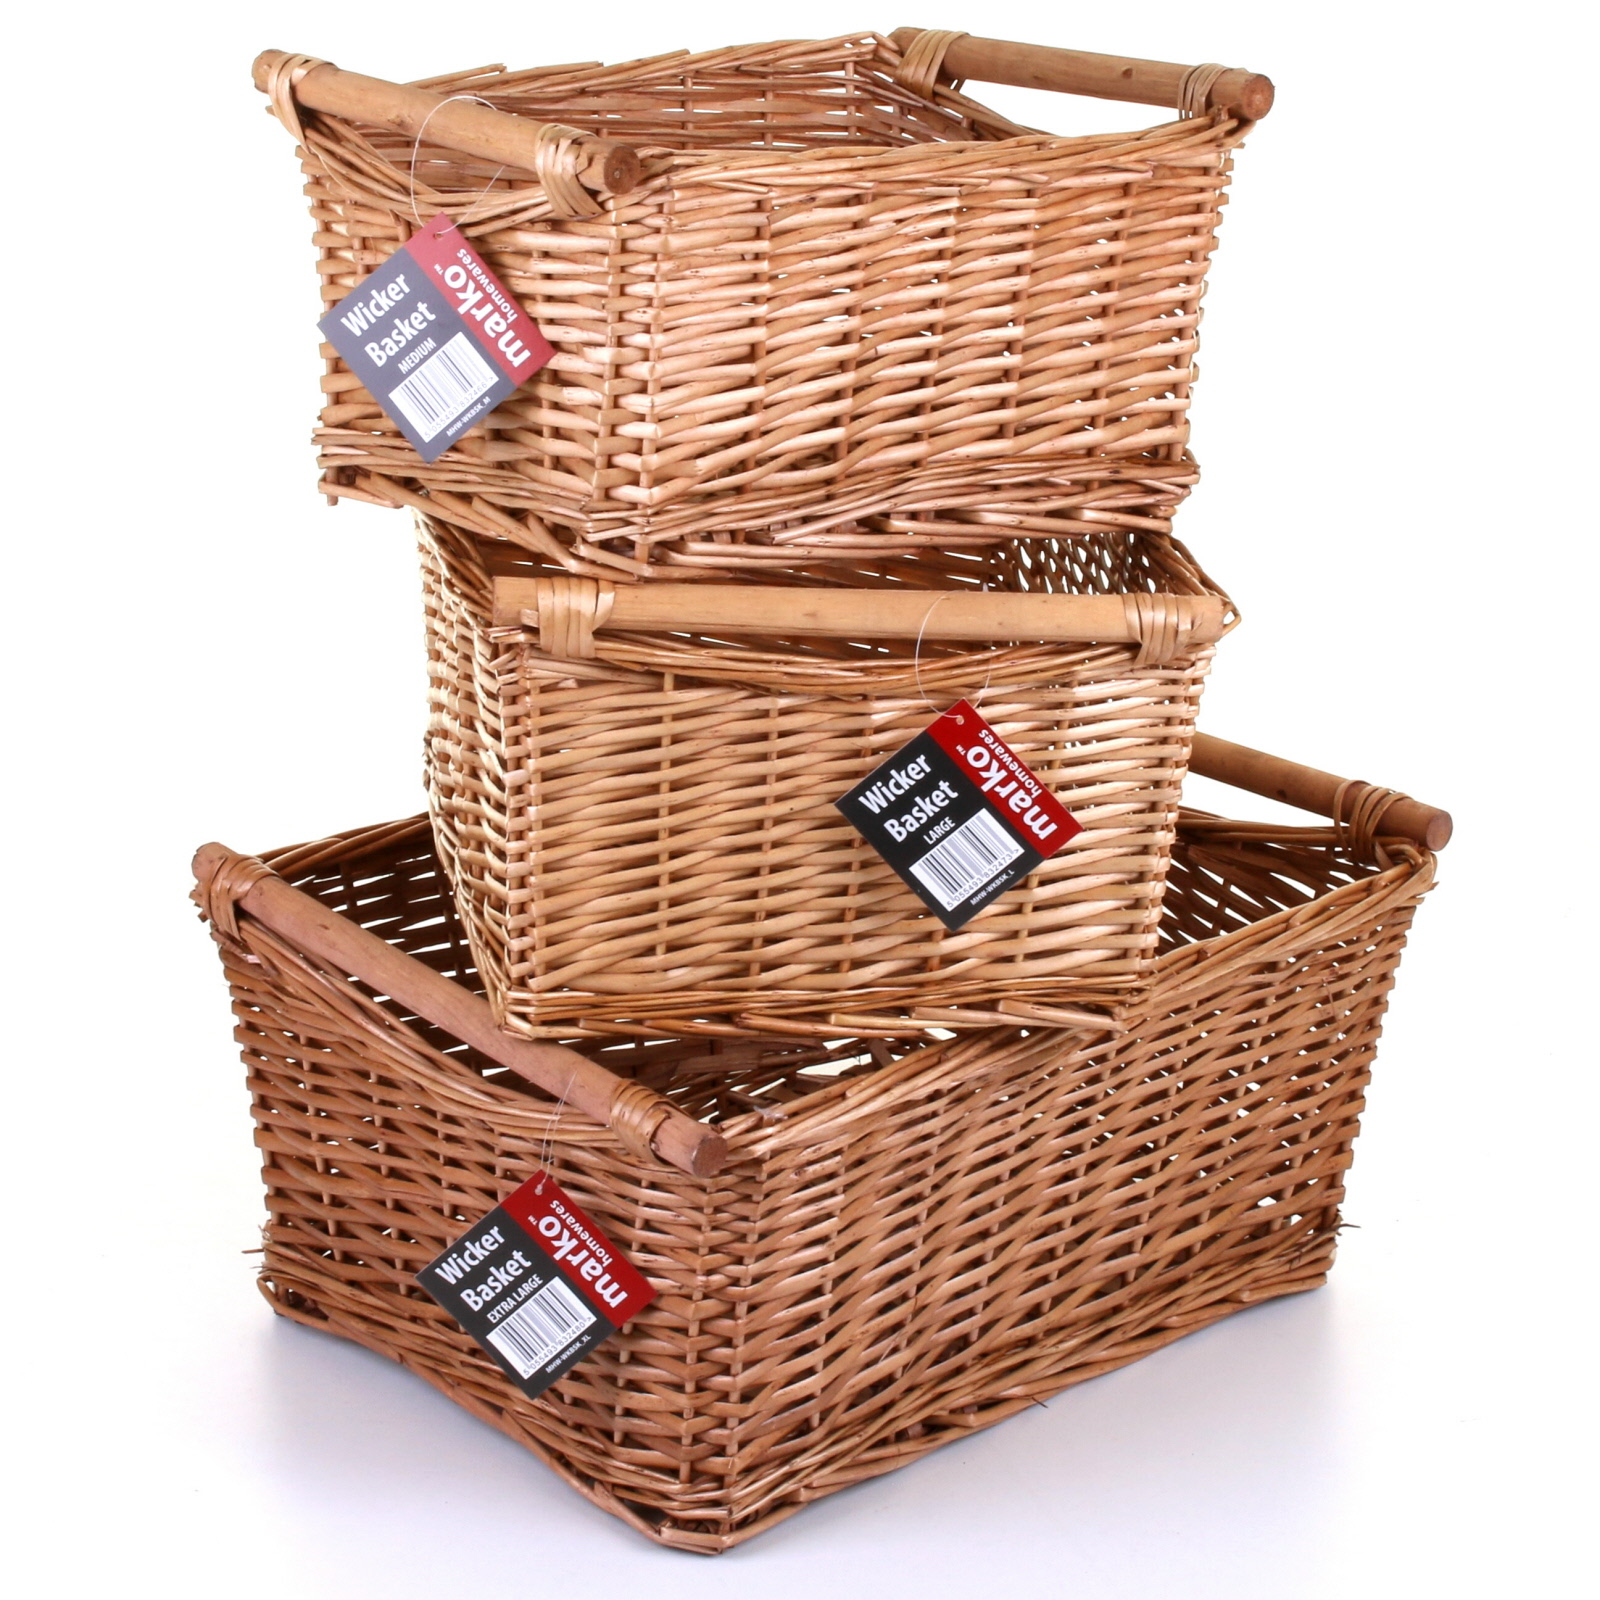 wicker storage baskets wooden handles christmas gift hamper basket set kitchen ebay. Black Bedroom Furniture Sets. Home Design Ideas